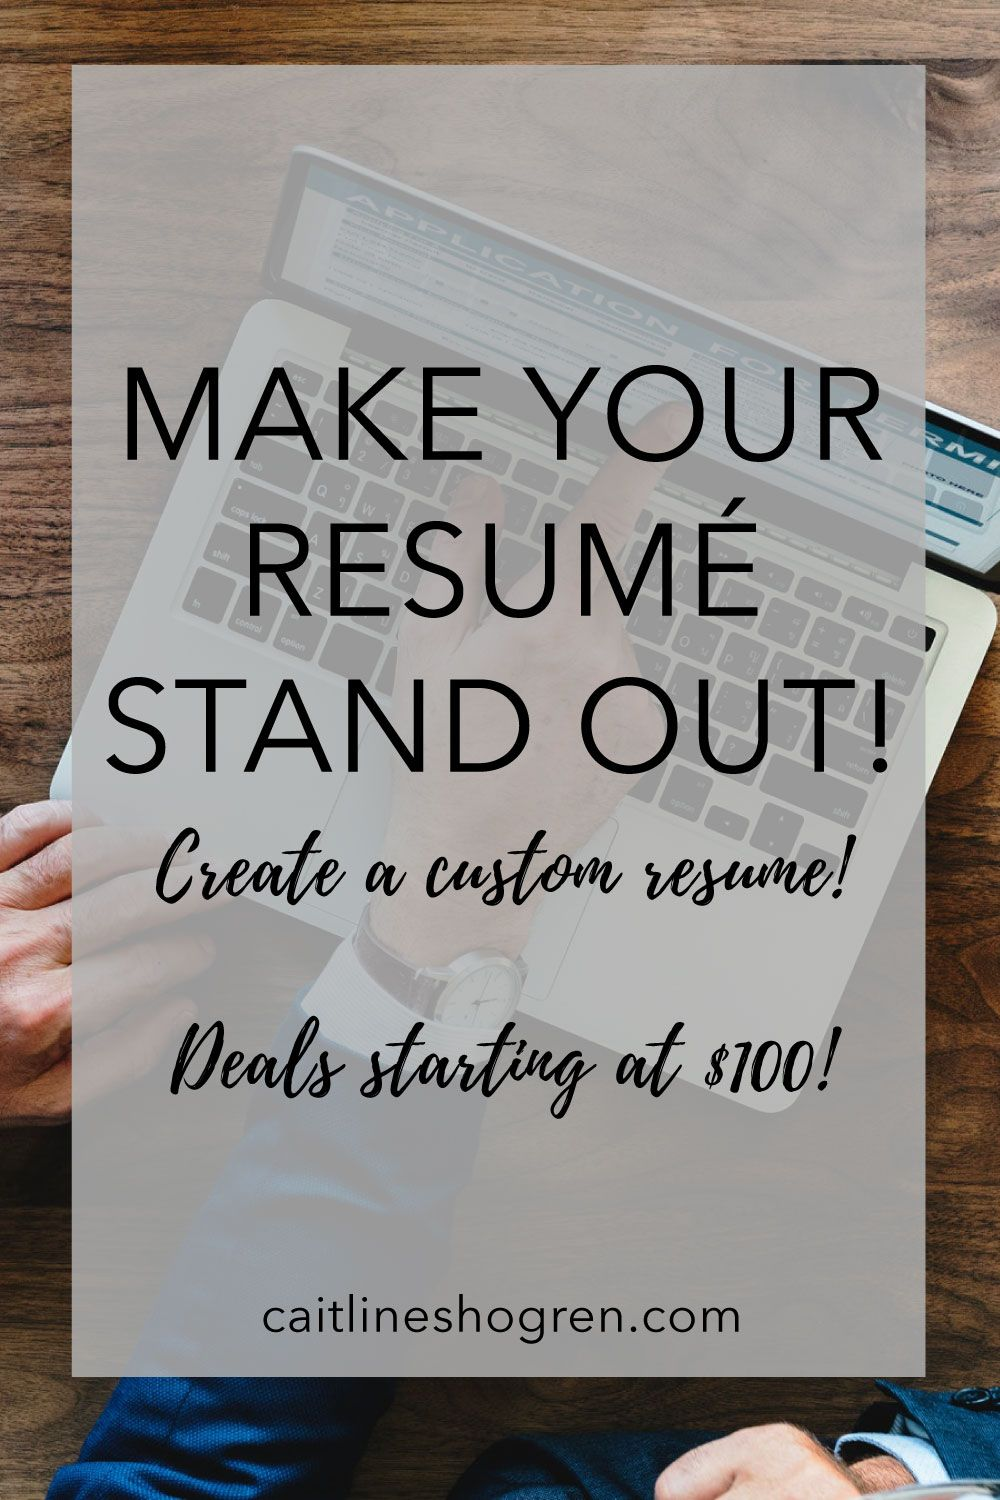 Resumes Resume, Successful business tips, Cover letter